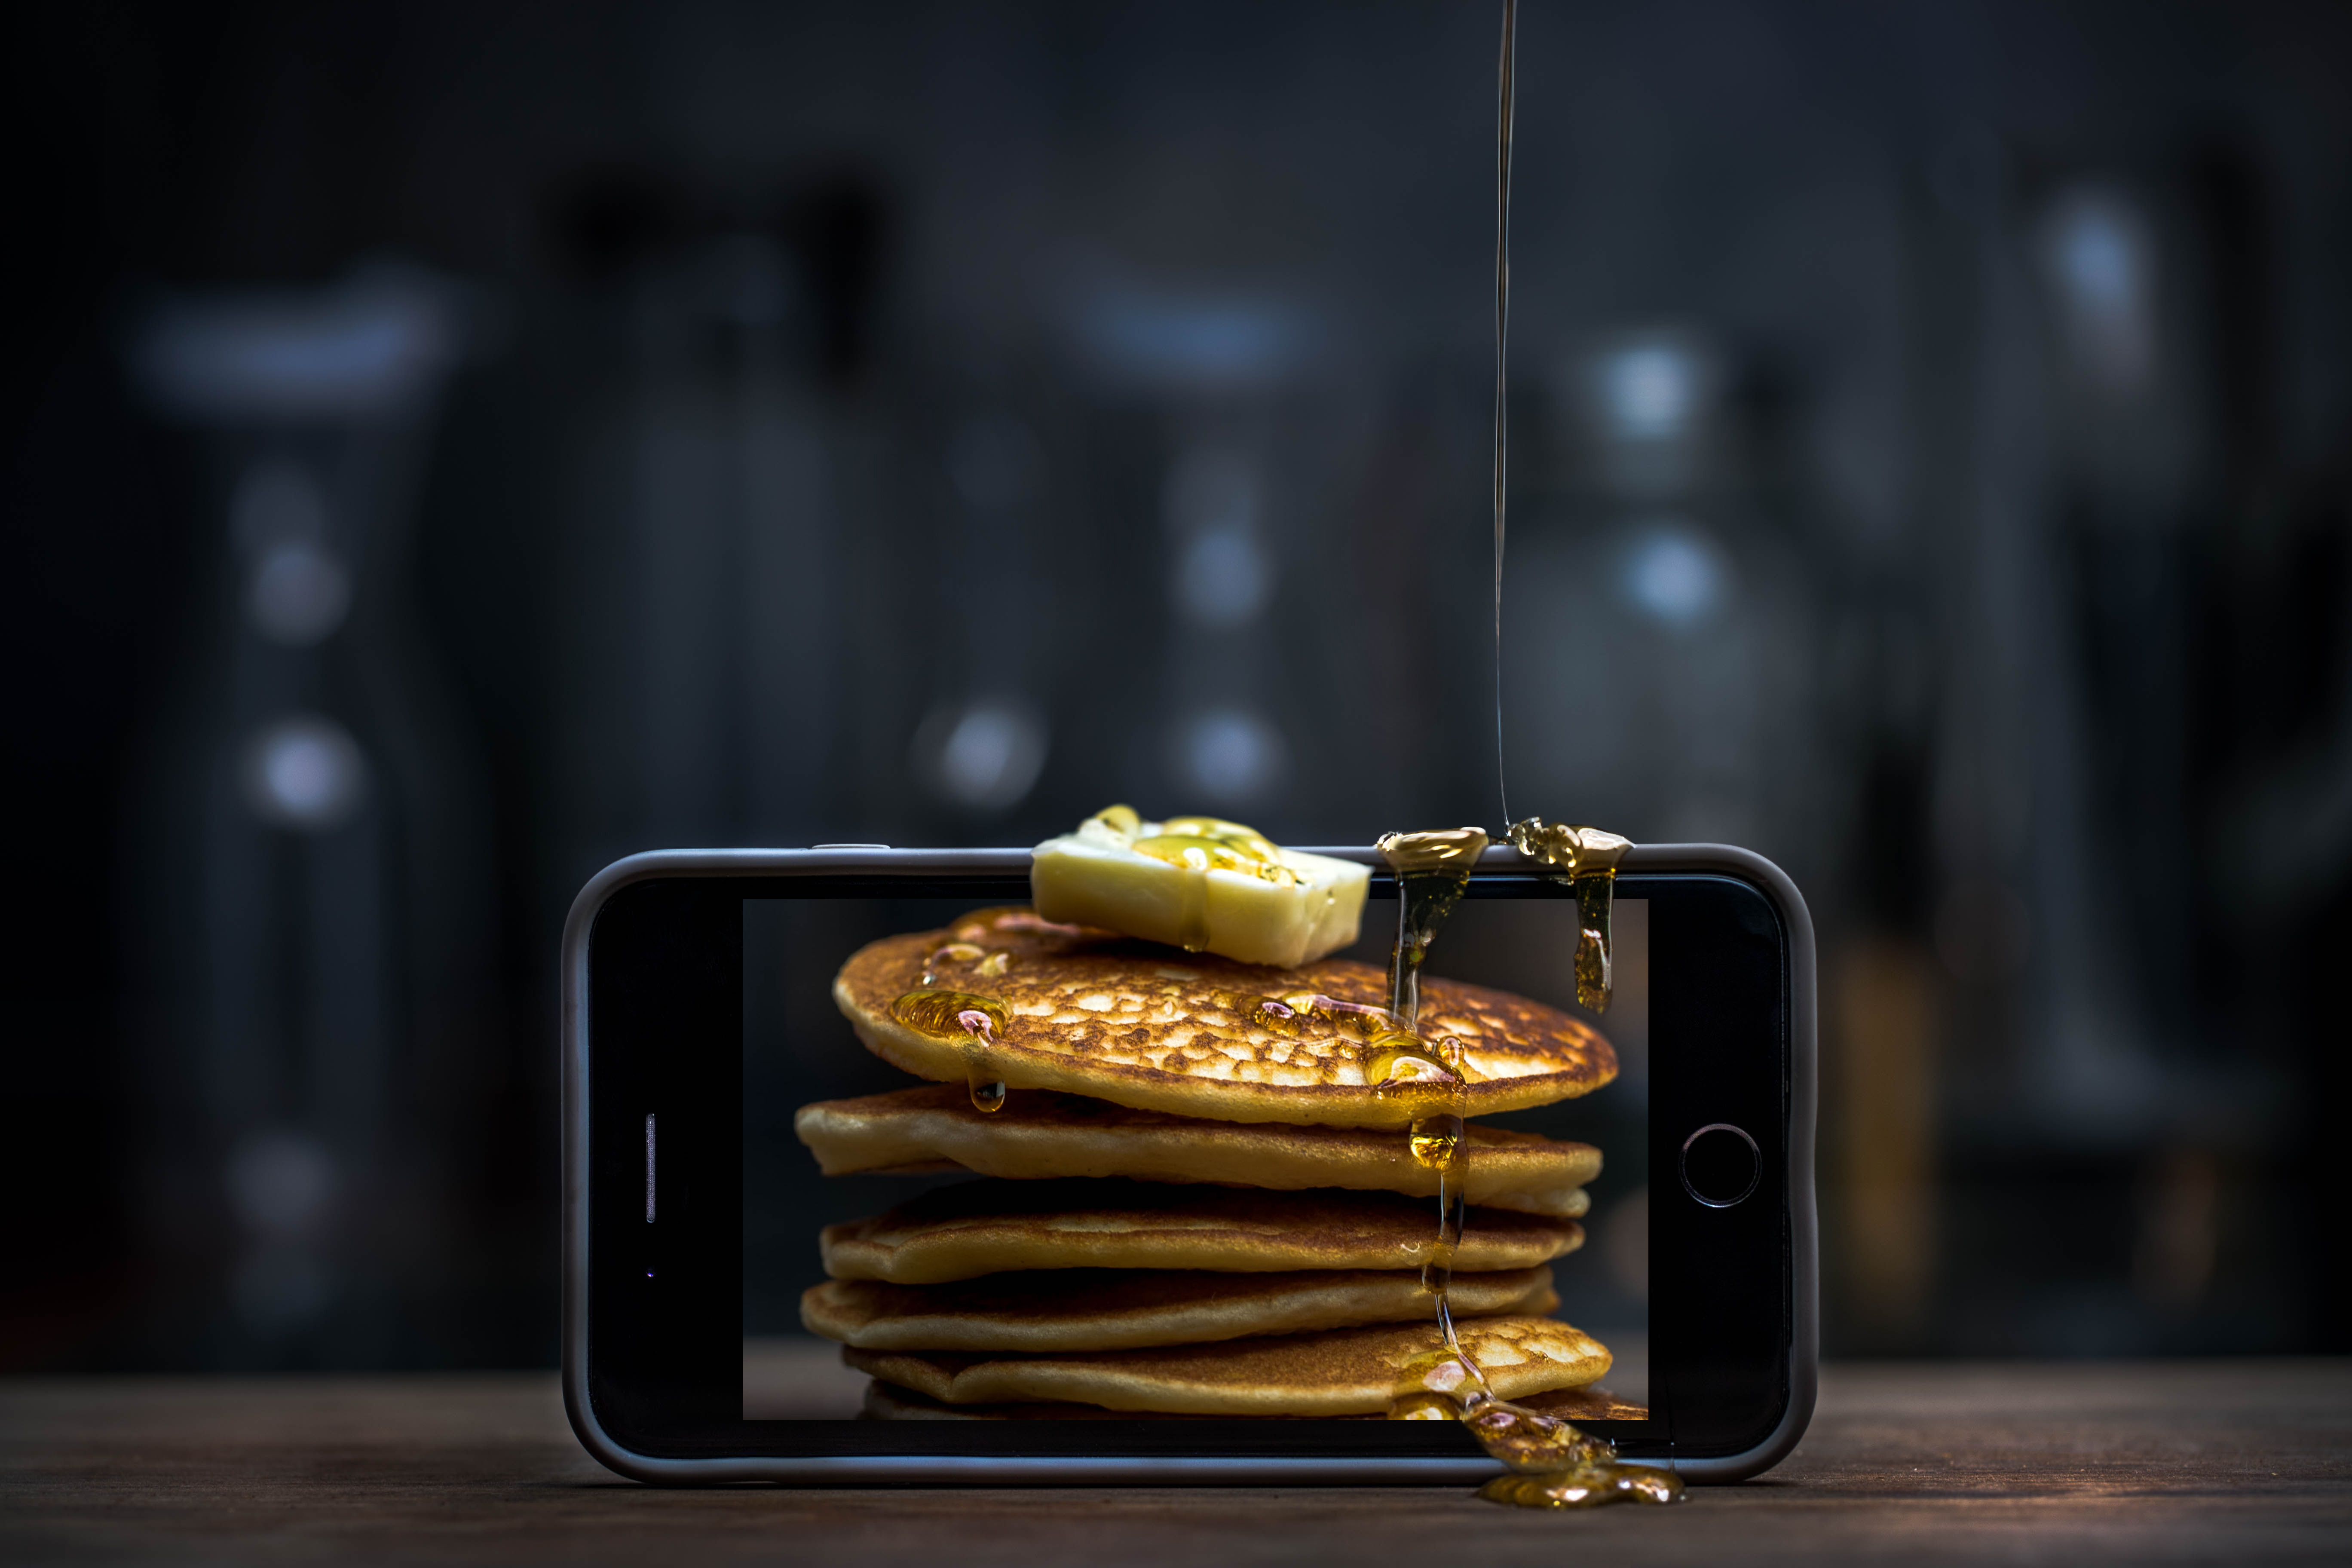 iPhone Pancakes